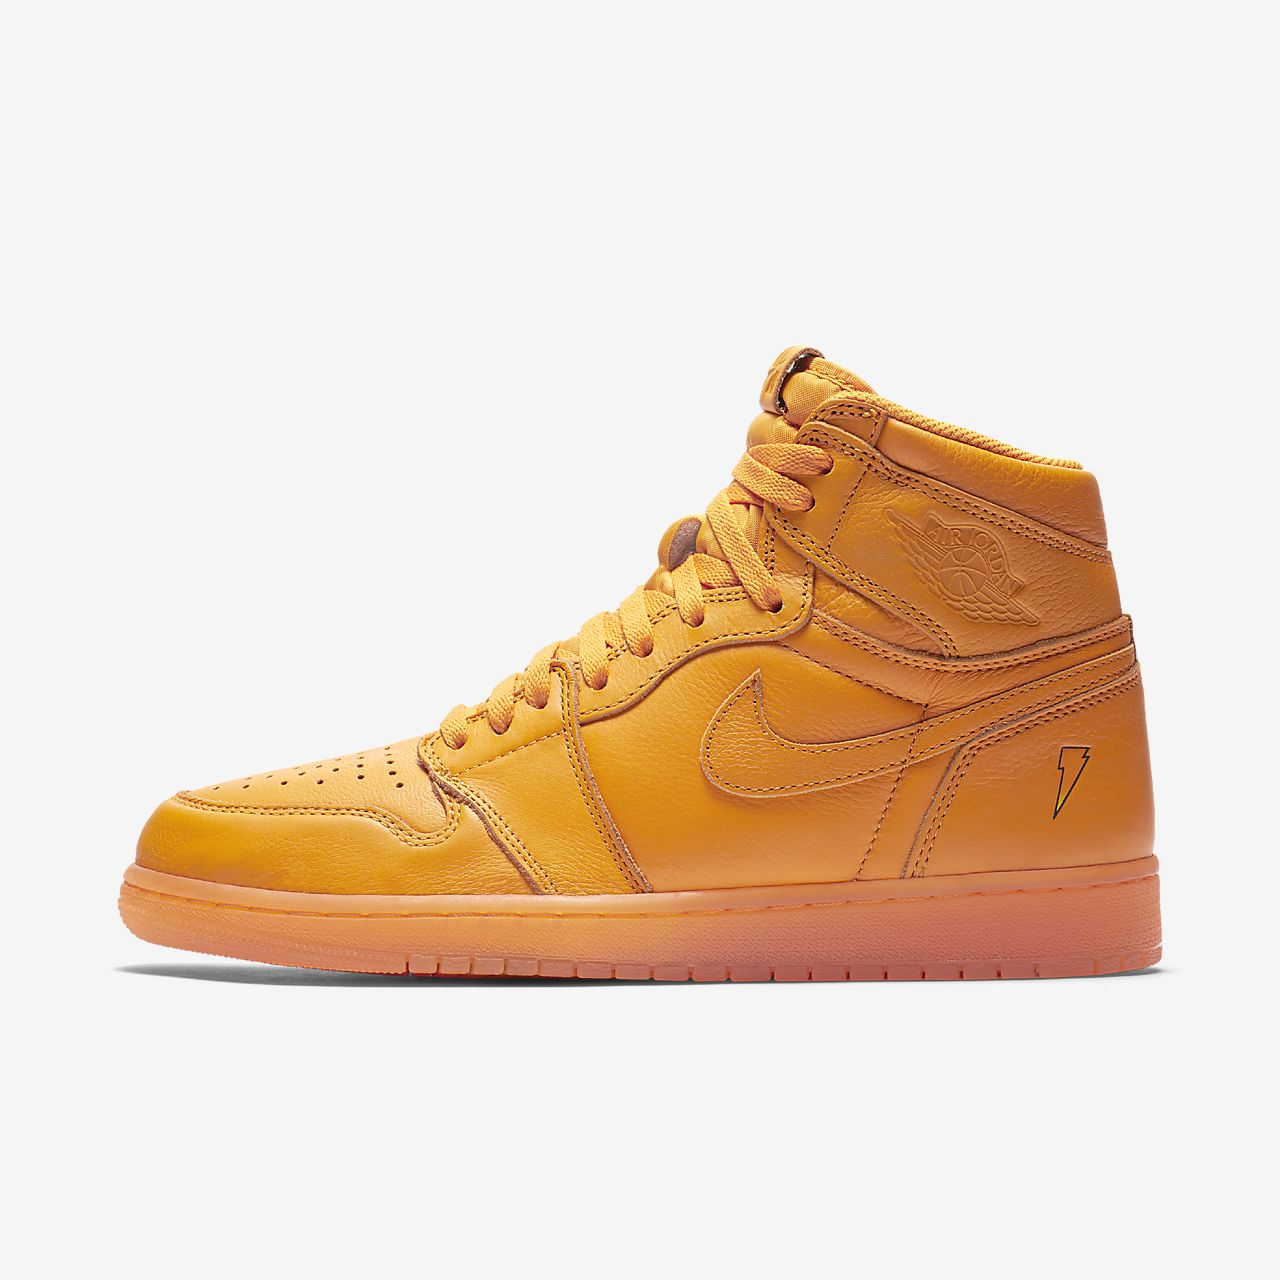 8122099850f Air Jordan 1 Retro High OG  Orange  Men s Shoe. Nike.com ZA